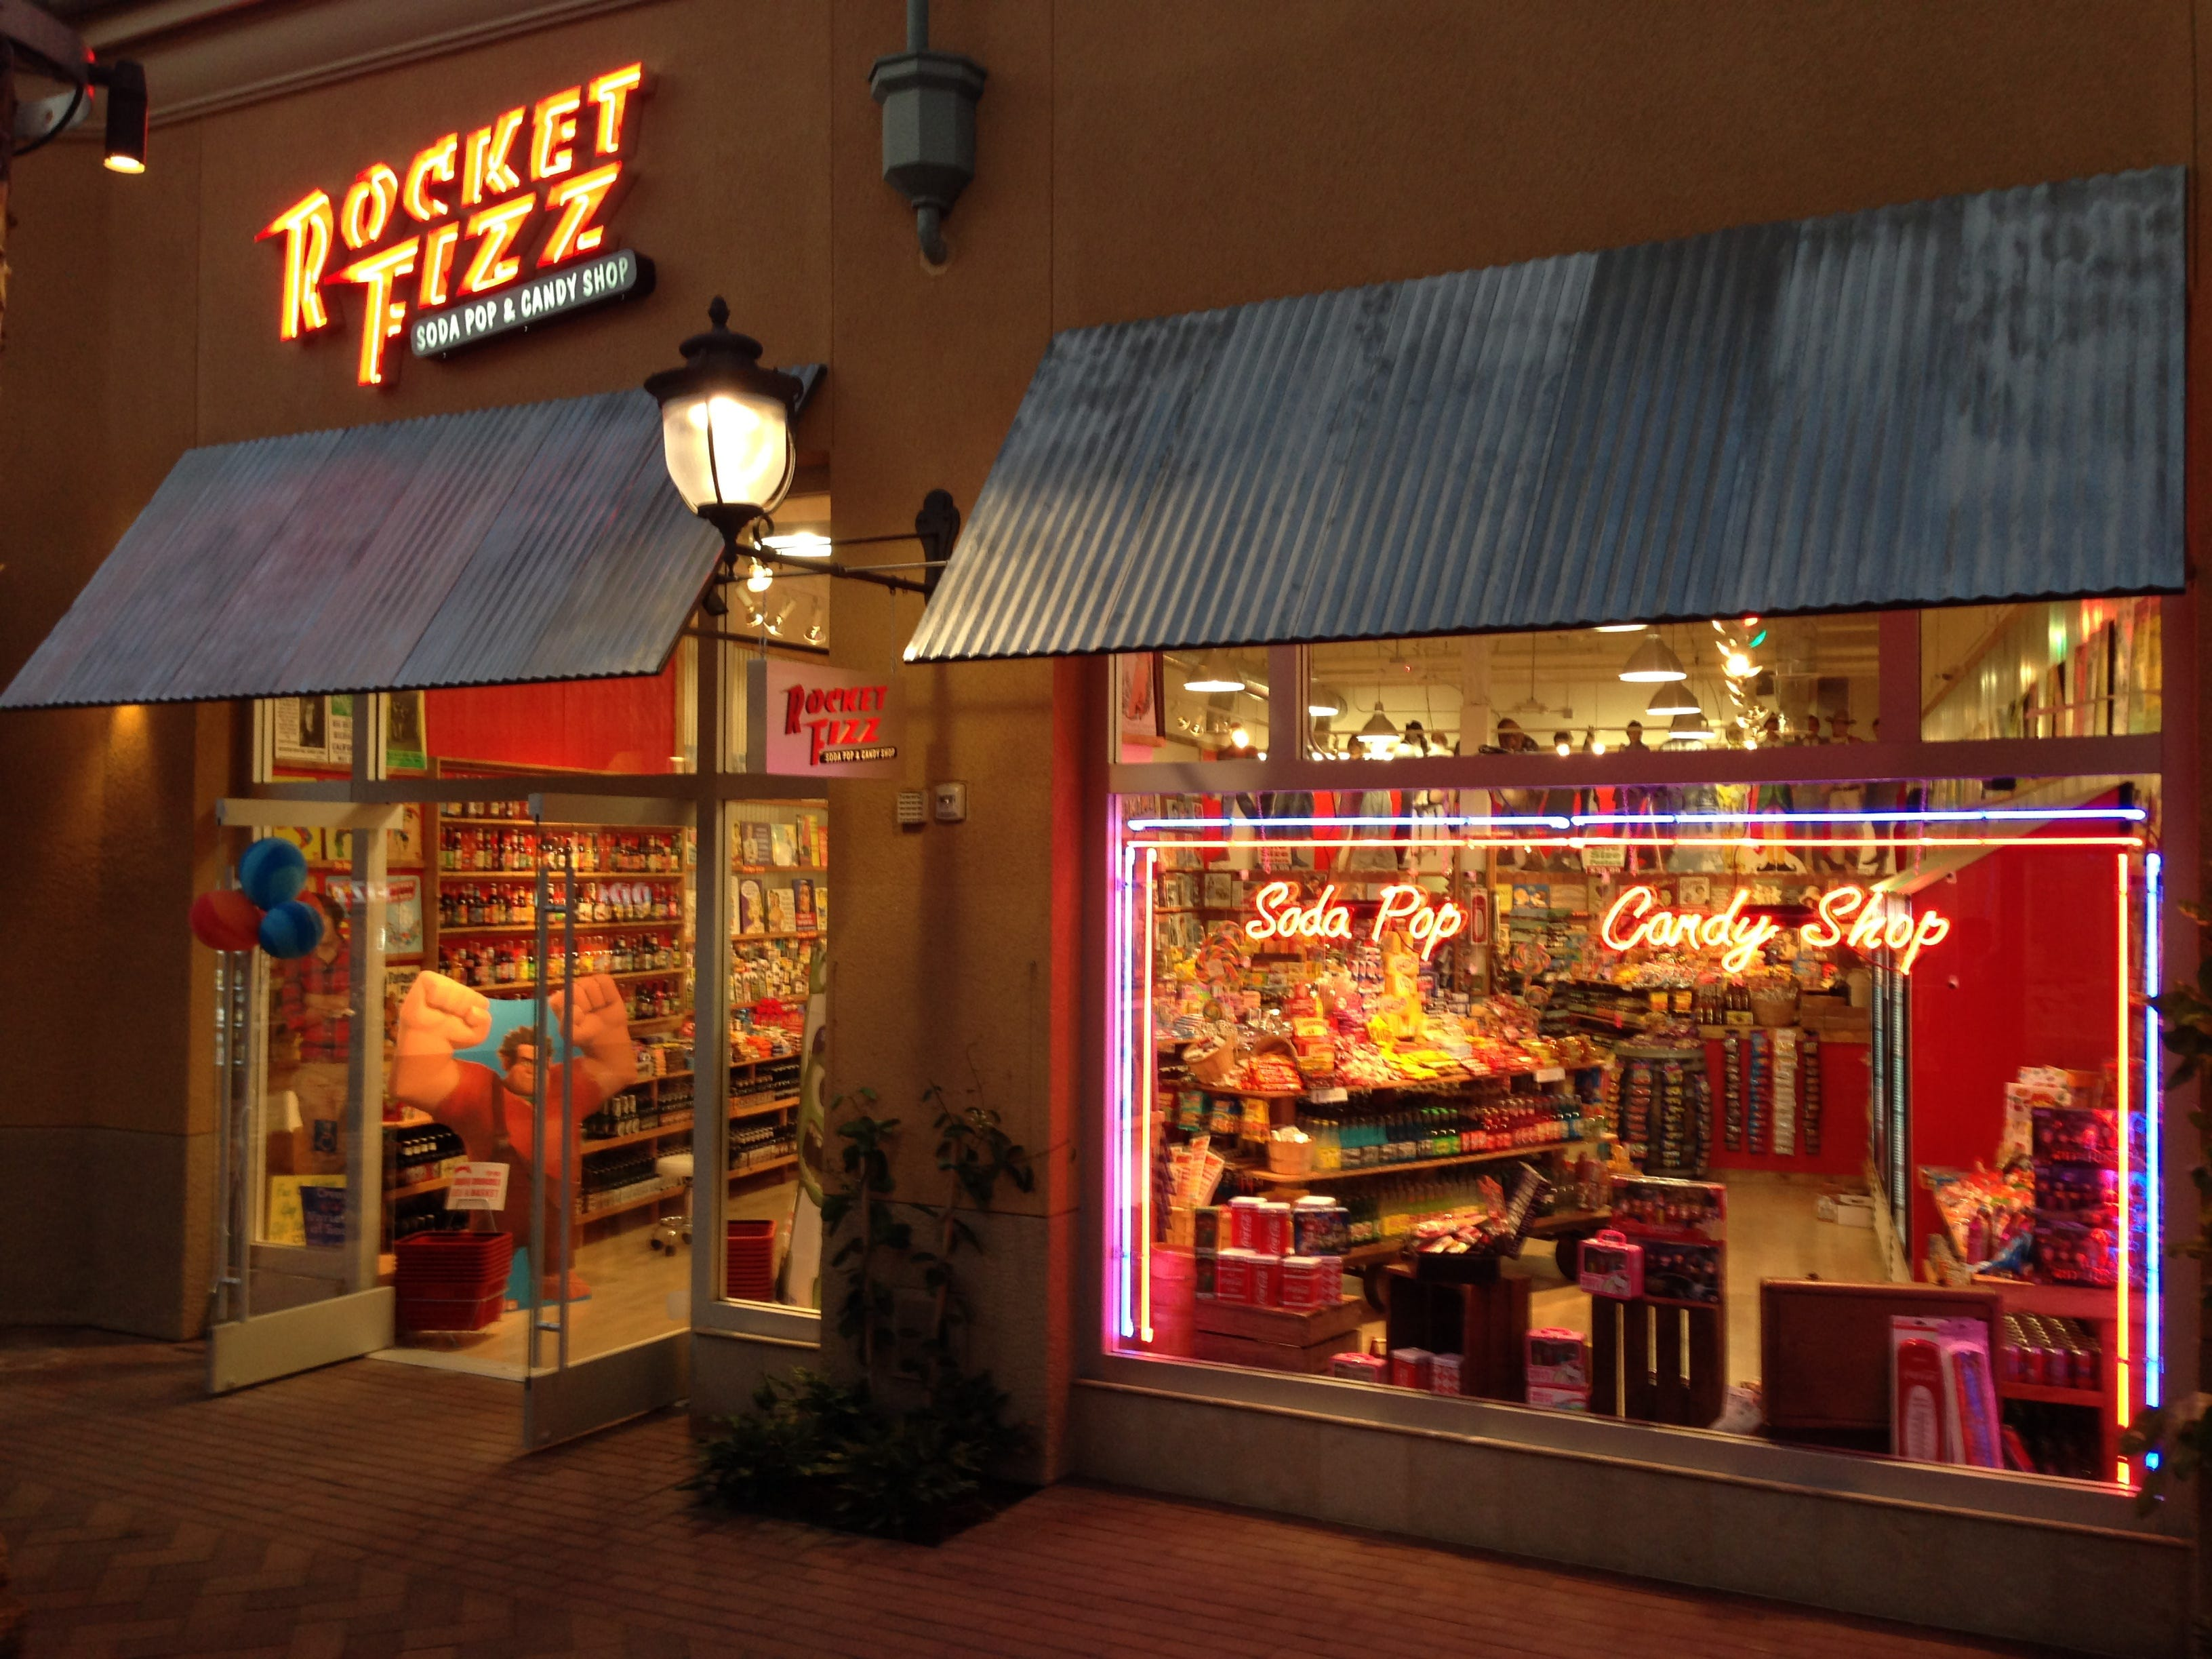 Exterior of a Rocket Fizz store in Irvine, California.